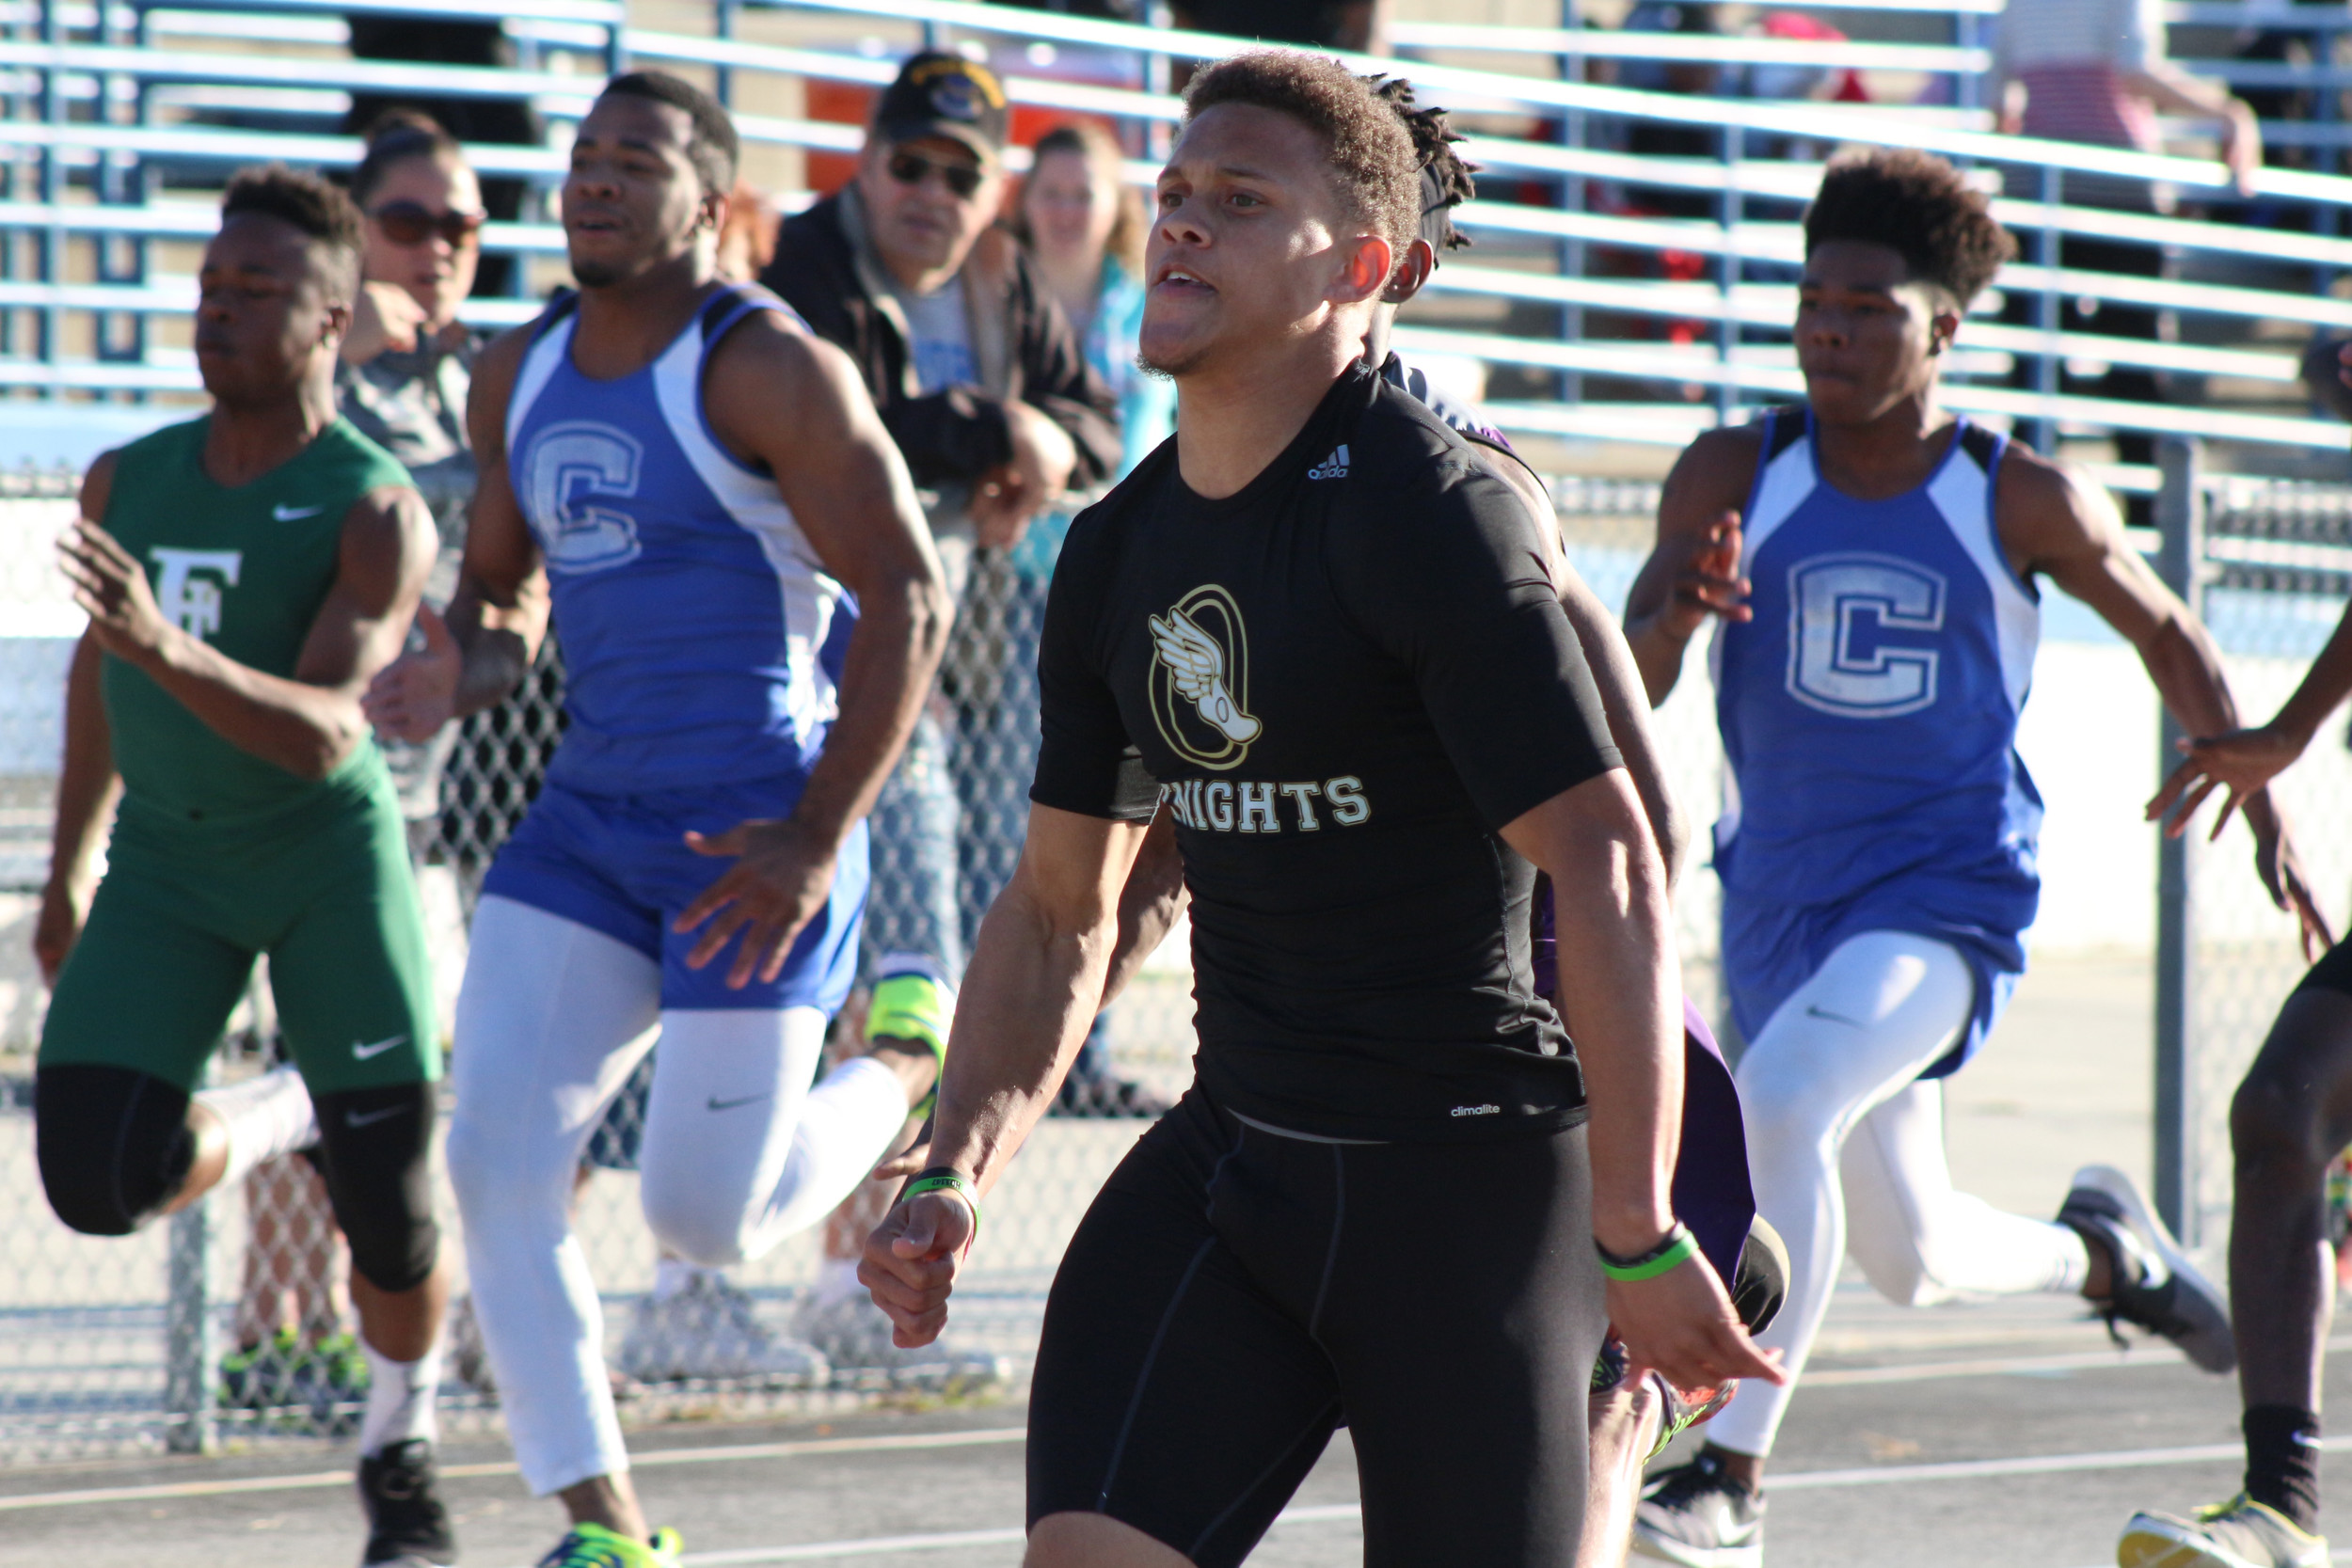 Oakleaf High sprinter Nick Roberts dominated the 100 meter dash with an 11.25 winning time over Marcus Floyd of Middleburg who finished second in 11.32.  Roberts also ran on two winning relays for the Knights.